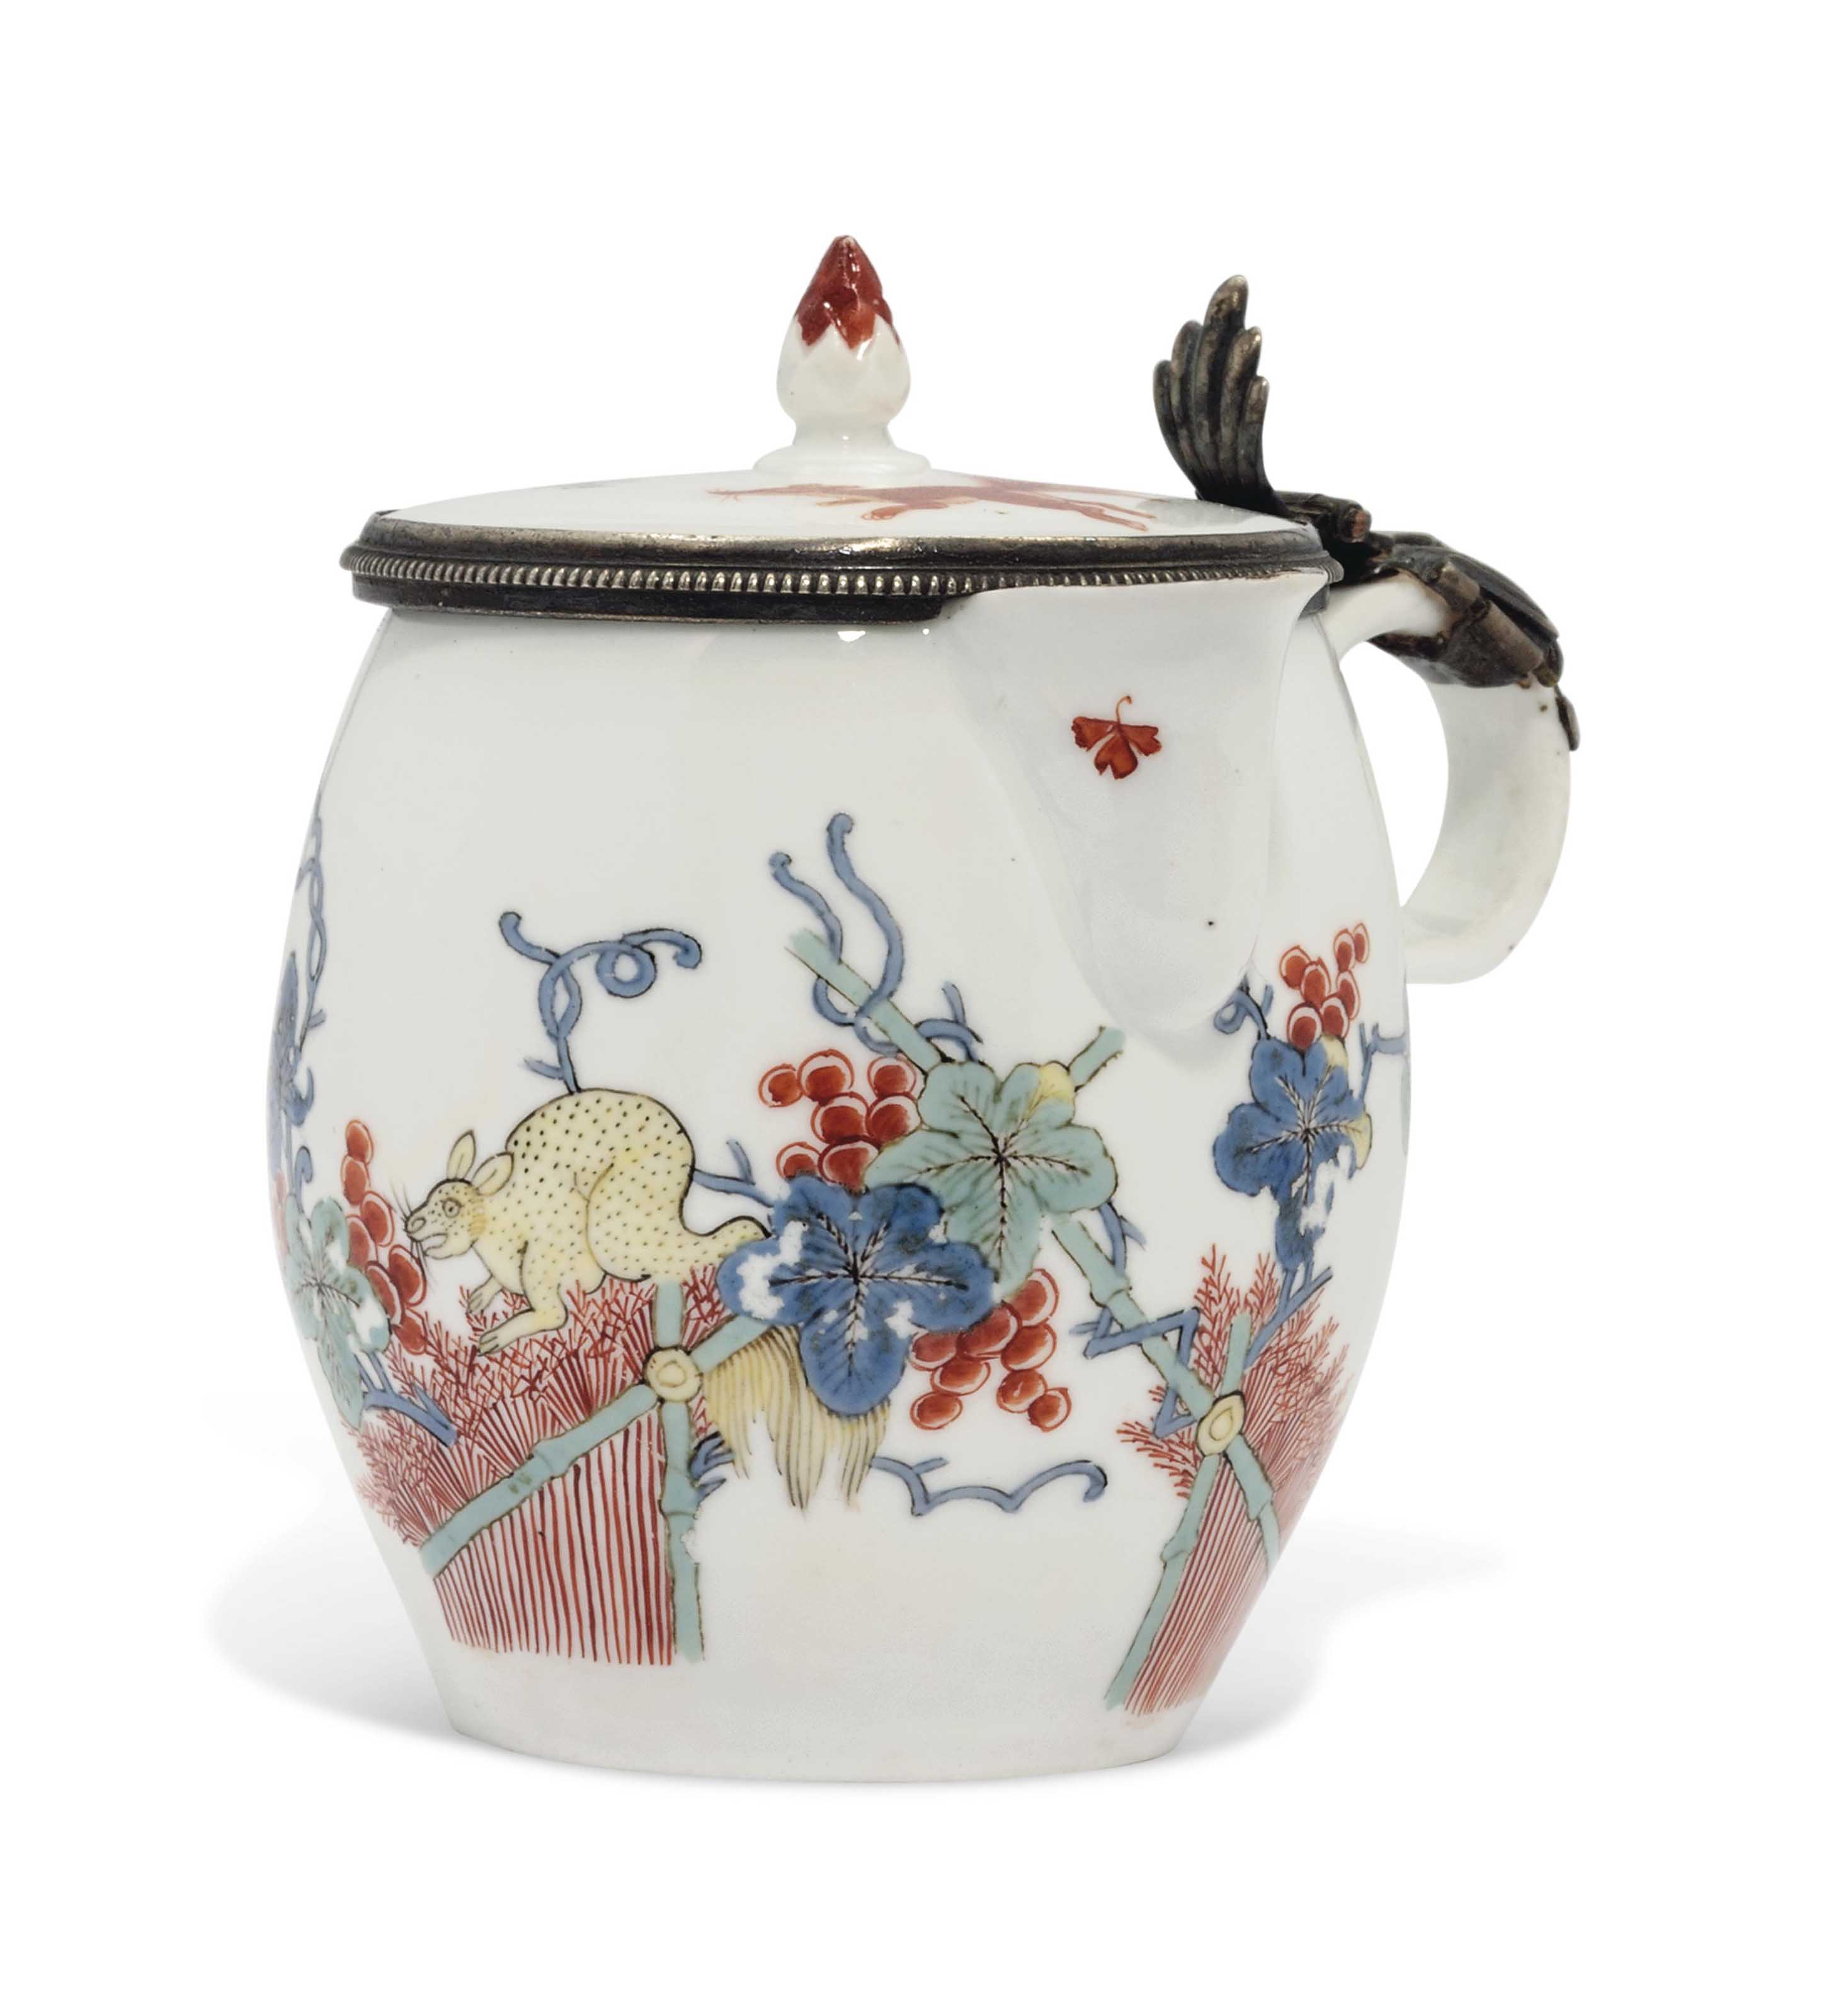 A MEISSEN SILVER-MOUNTED KAKIEMON MUSTARD POT AND COVER